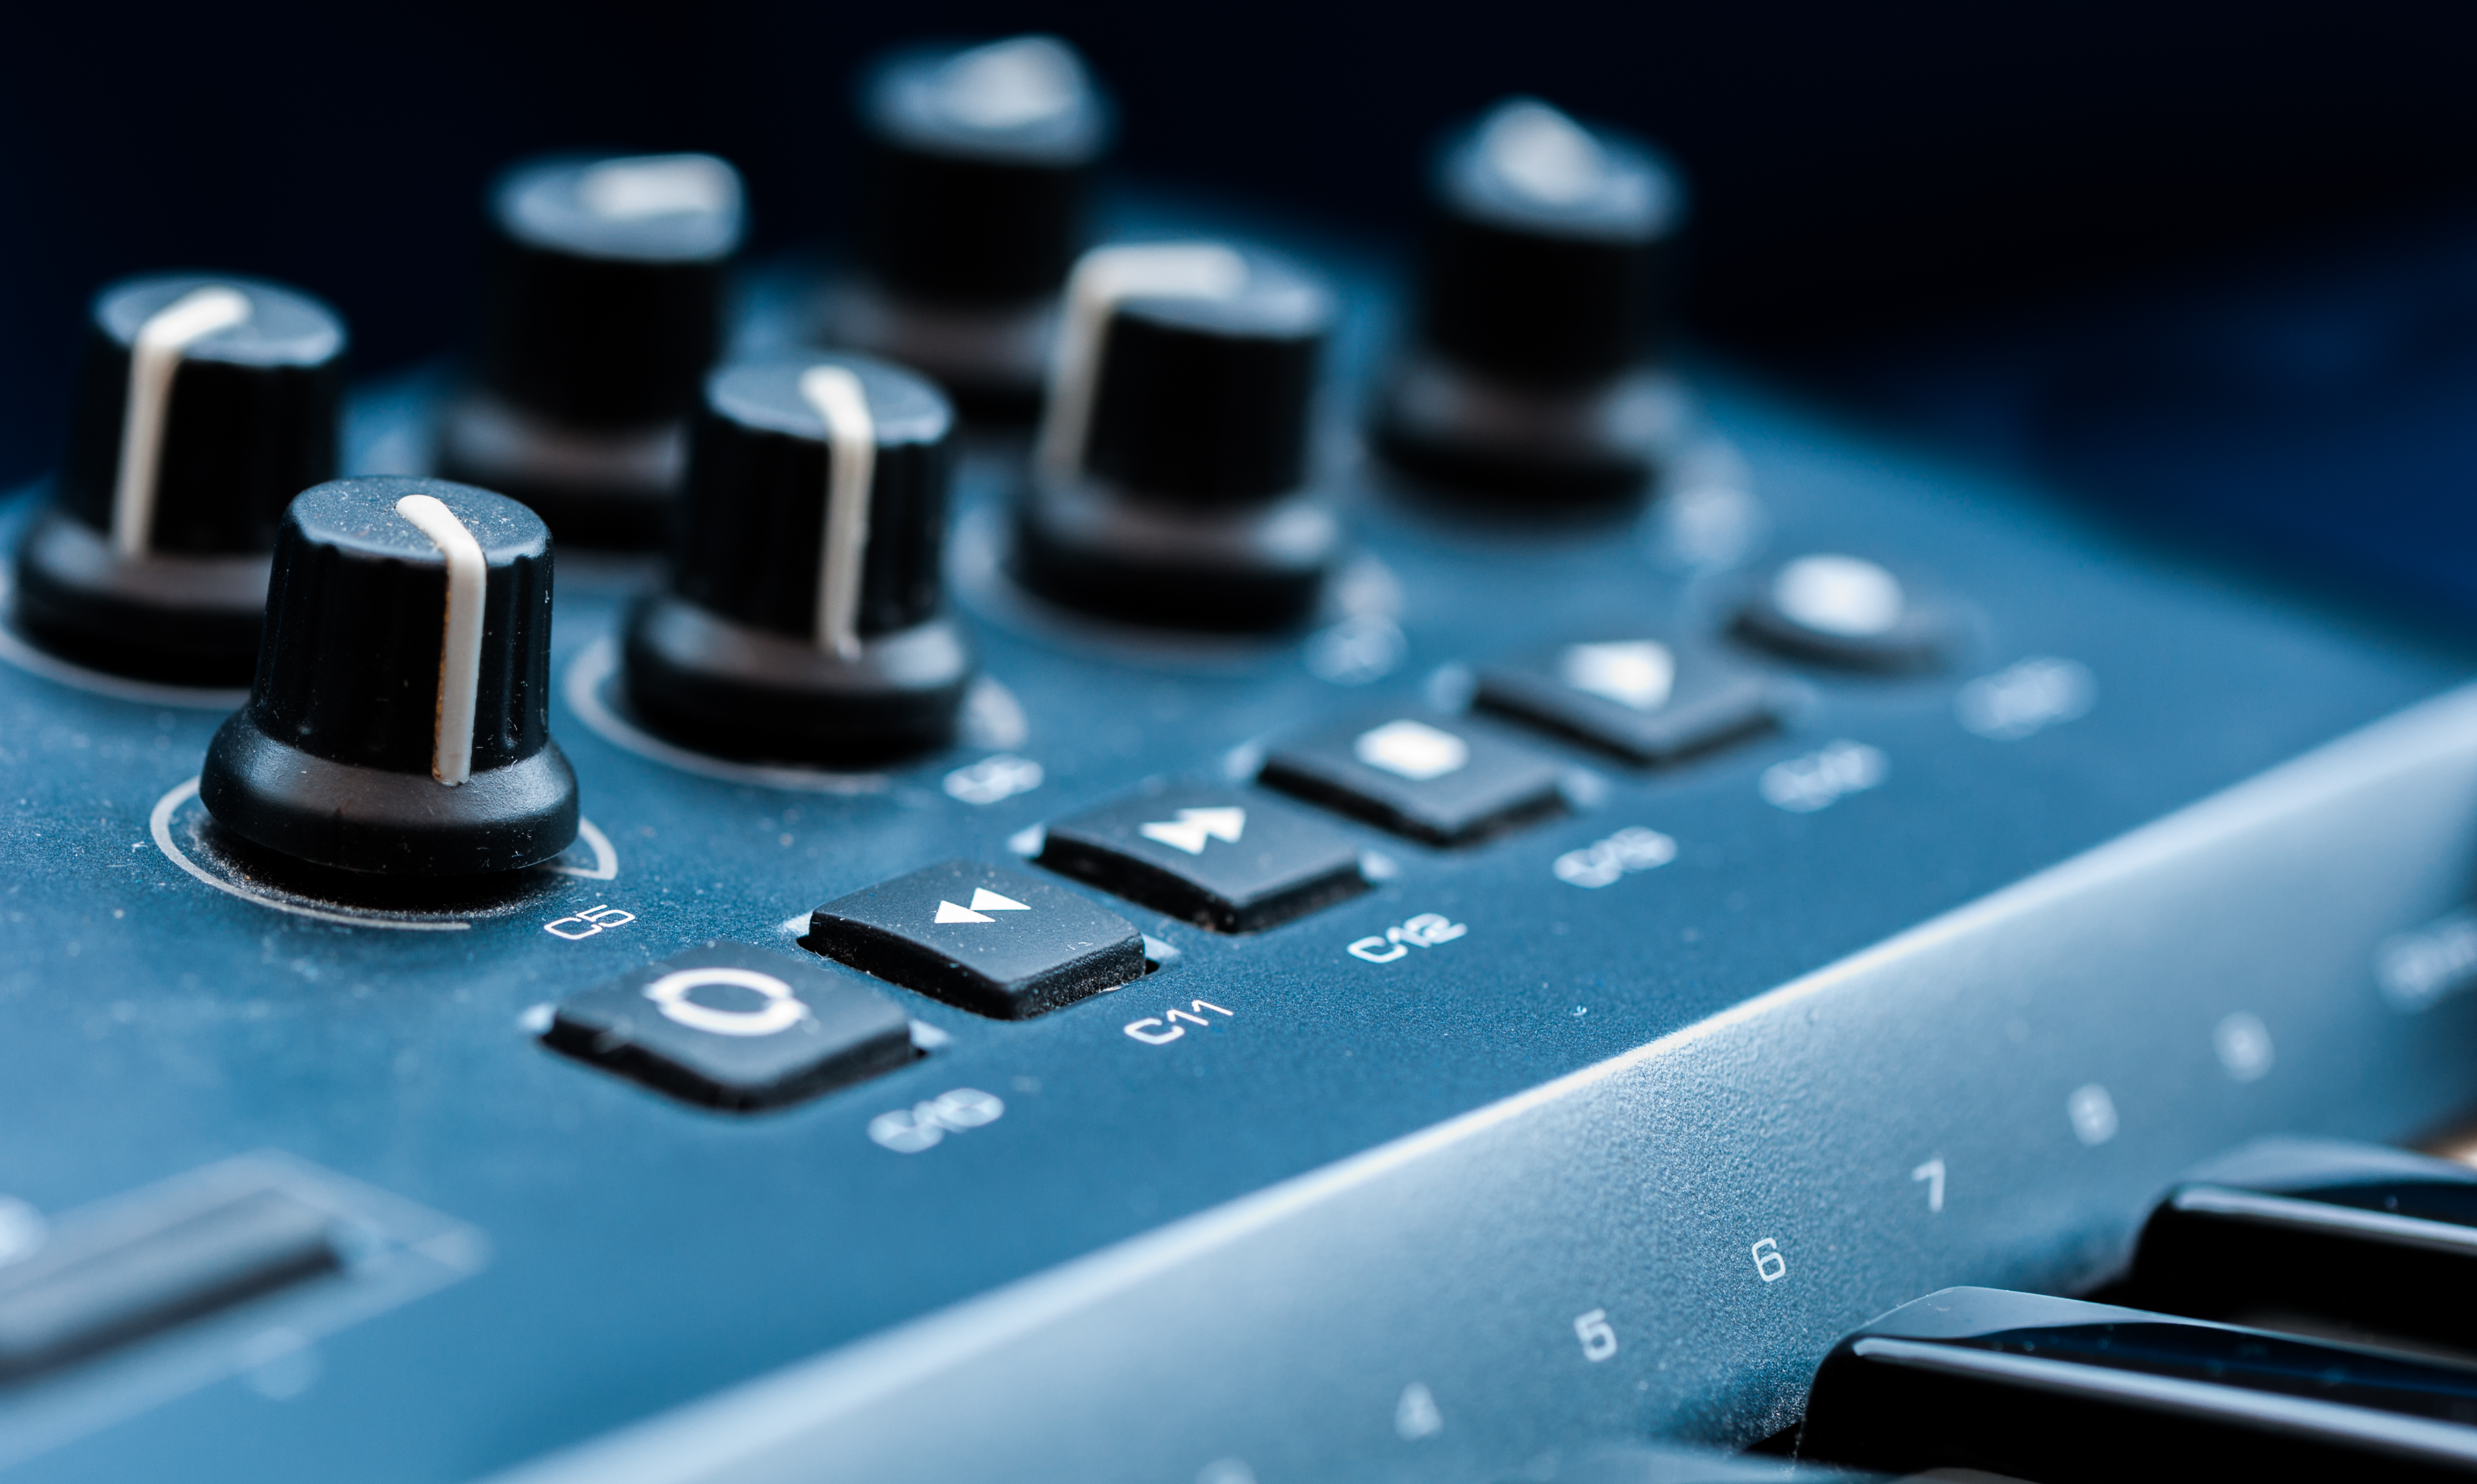 Techno Synthesizer Controller